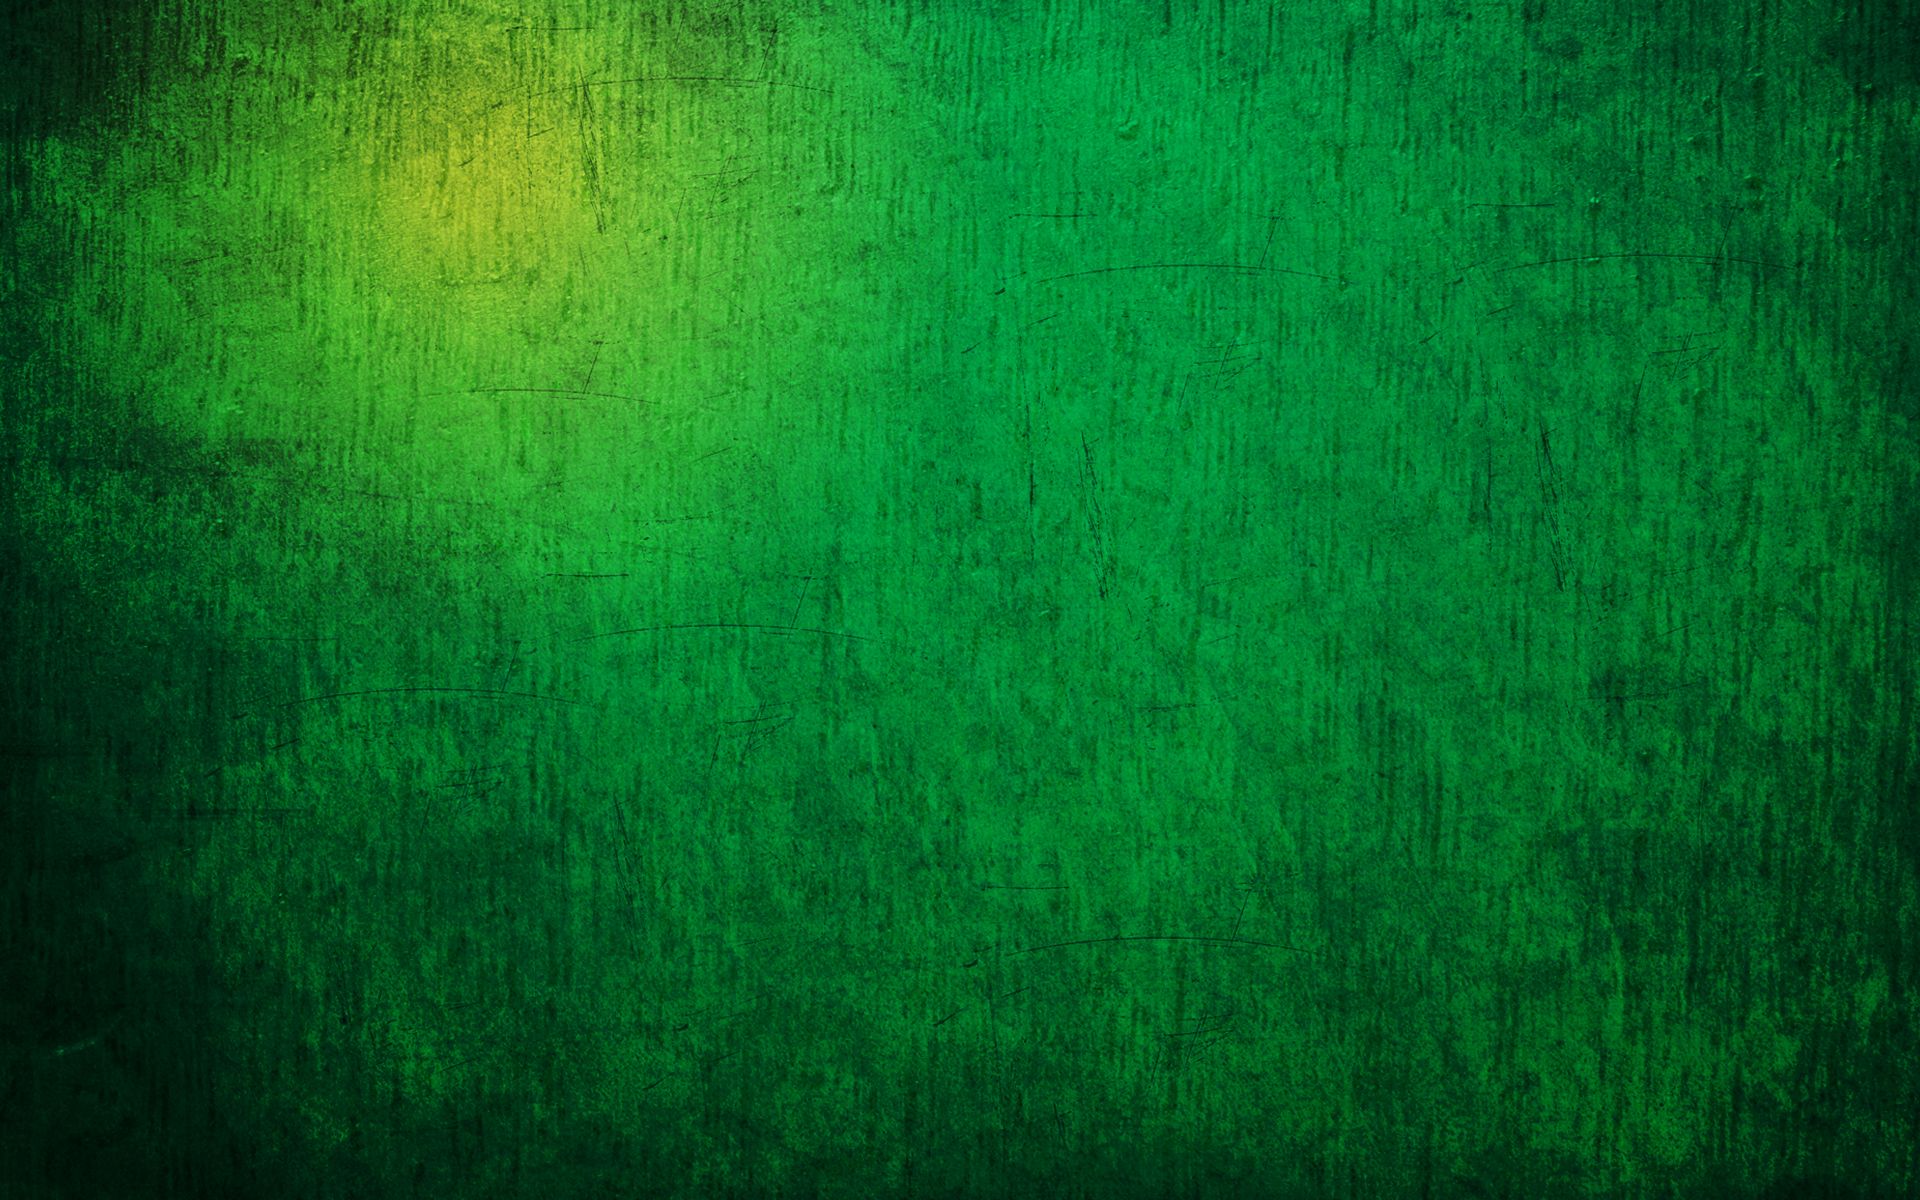 green background 21869 1920x1200 px ~ hdwallsource, Powerpoint templates